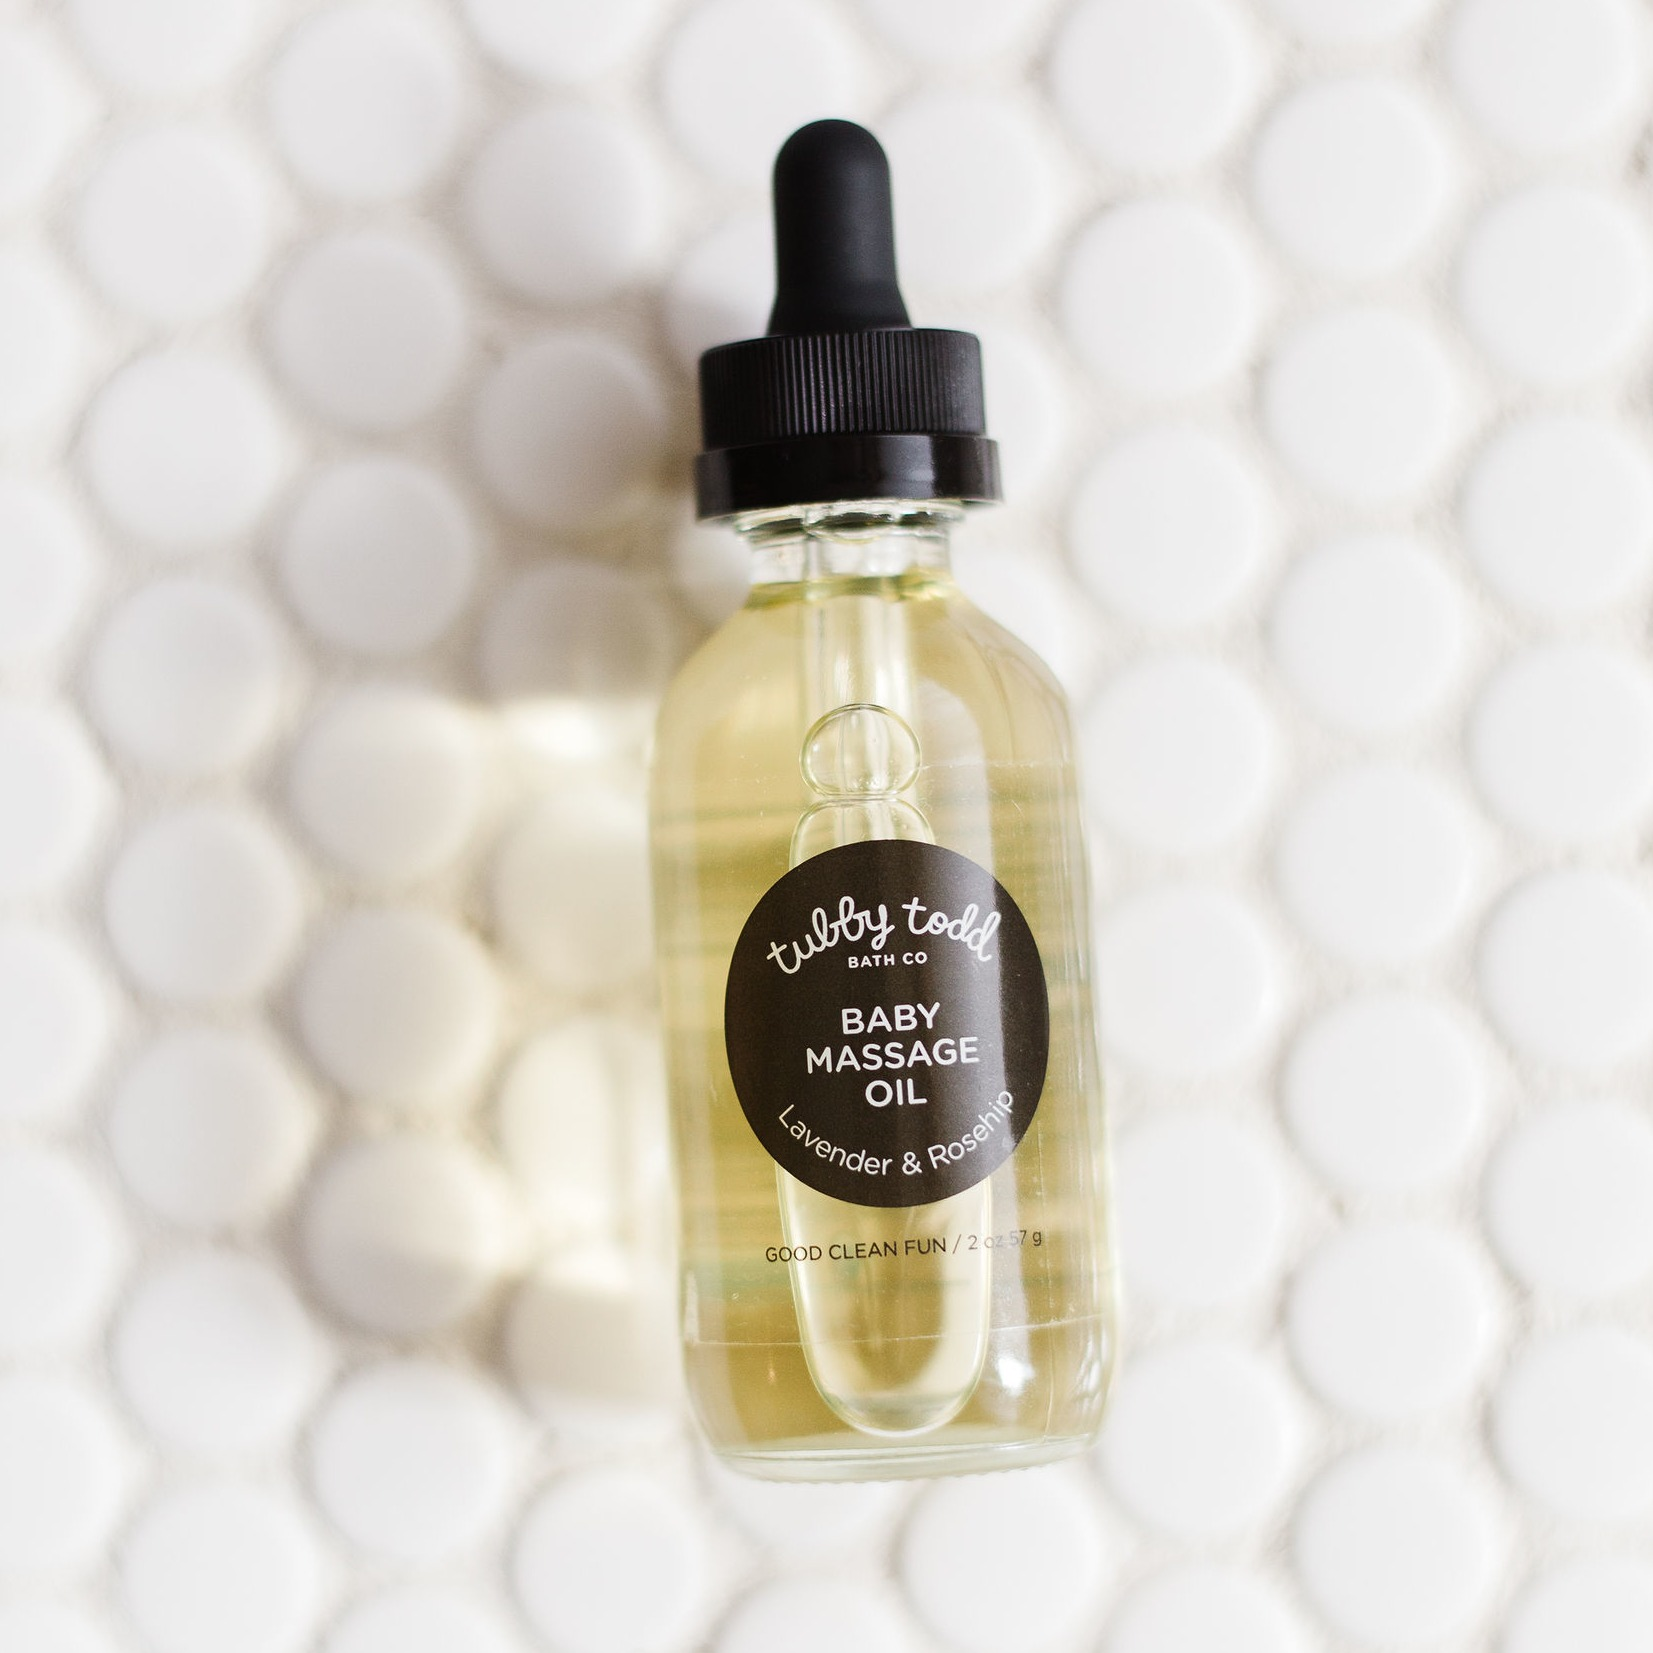 Customize hydration by mixing a few drops of Baby Massage Oil with your moisturizer of choice